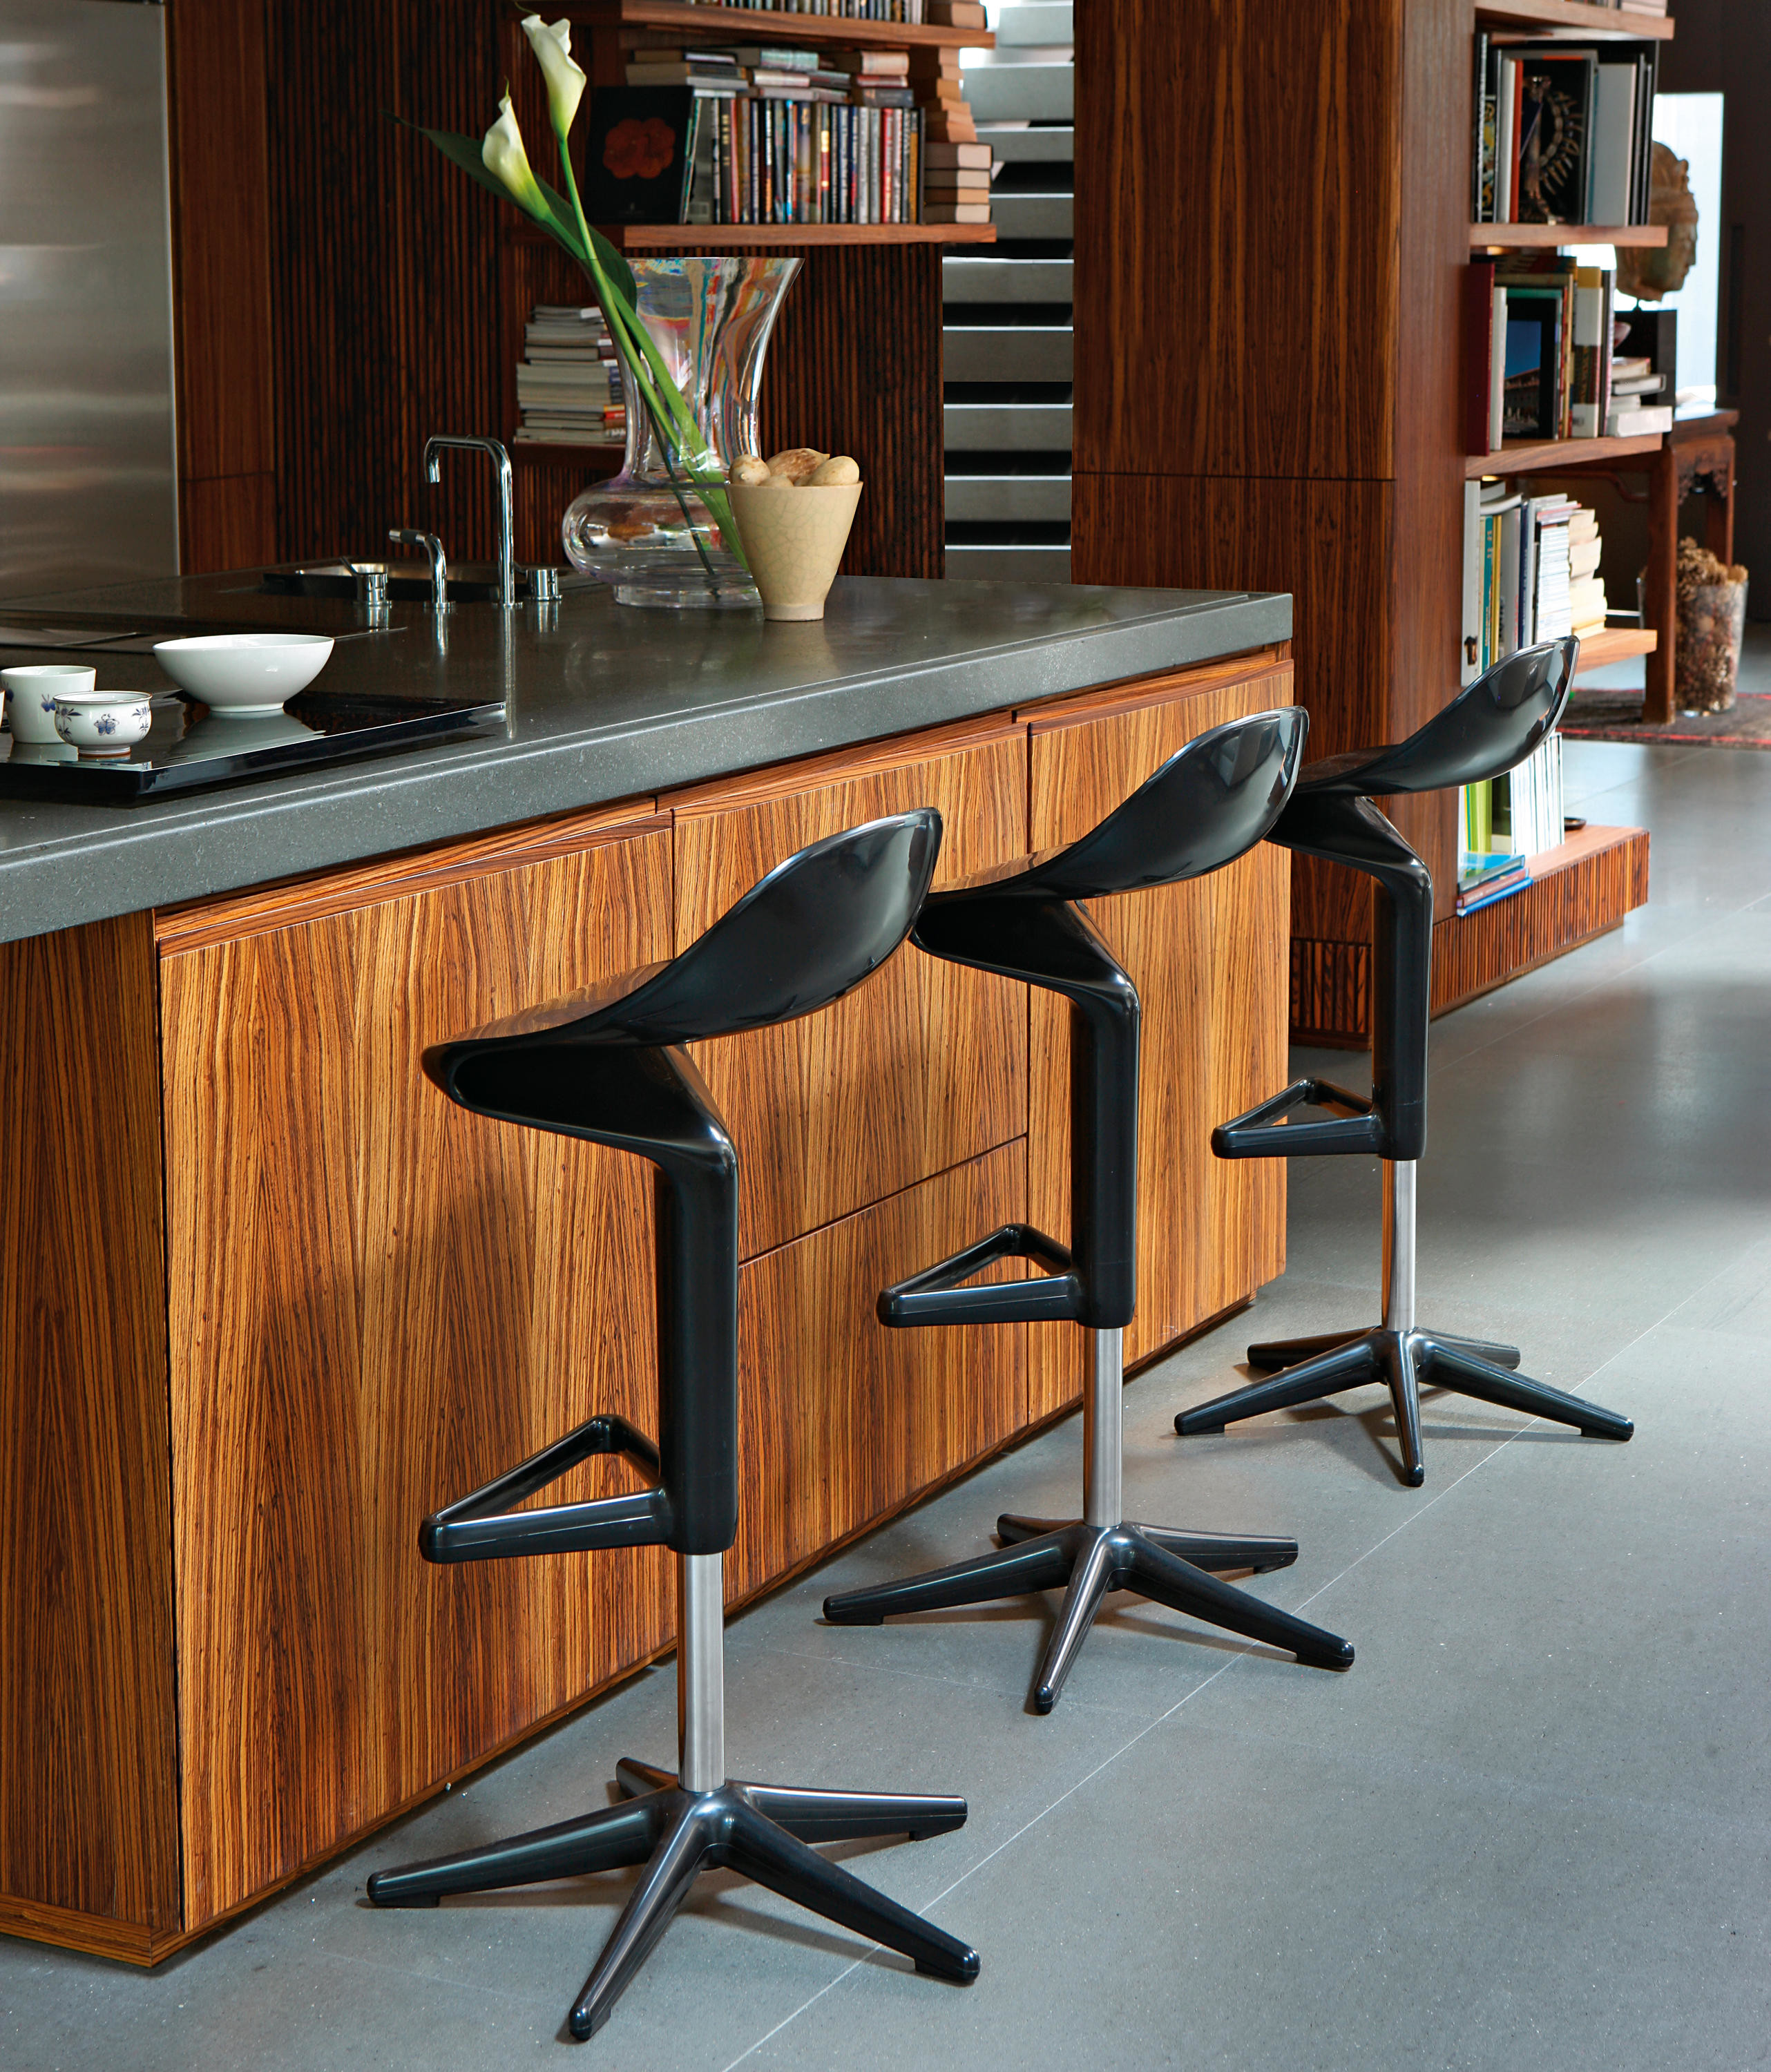 Chaise de bar Spoon de Kartell 19